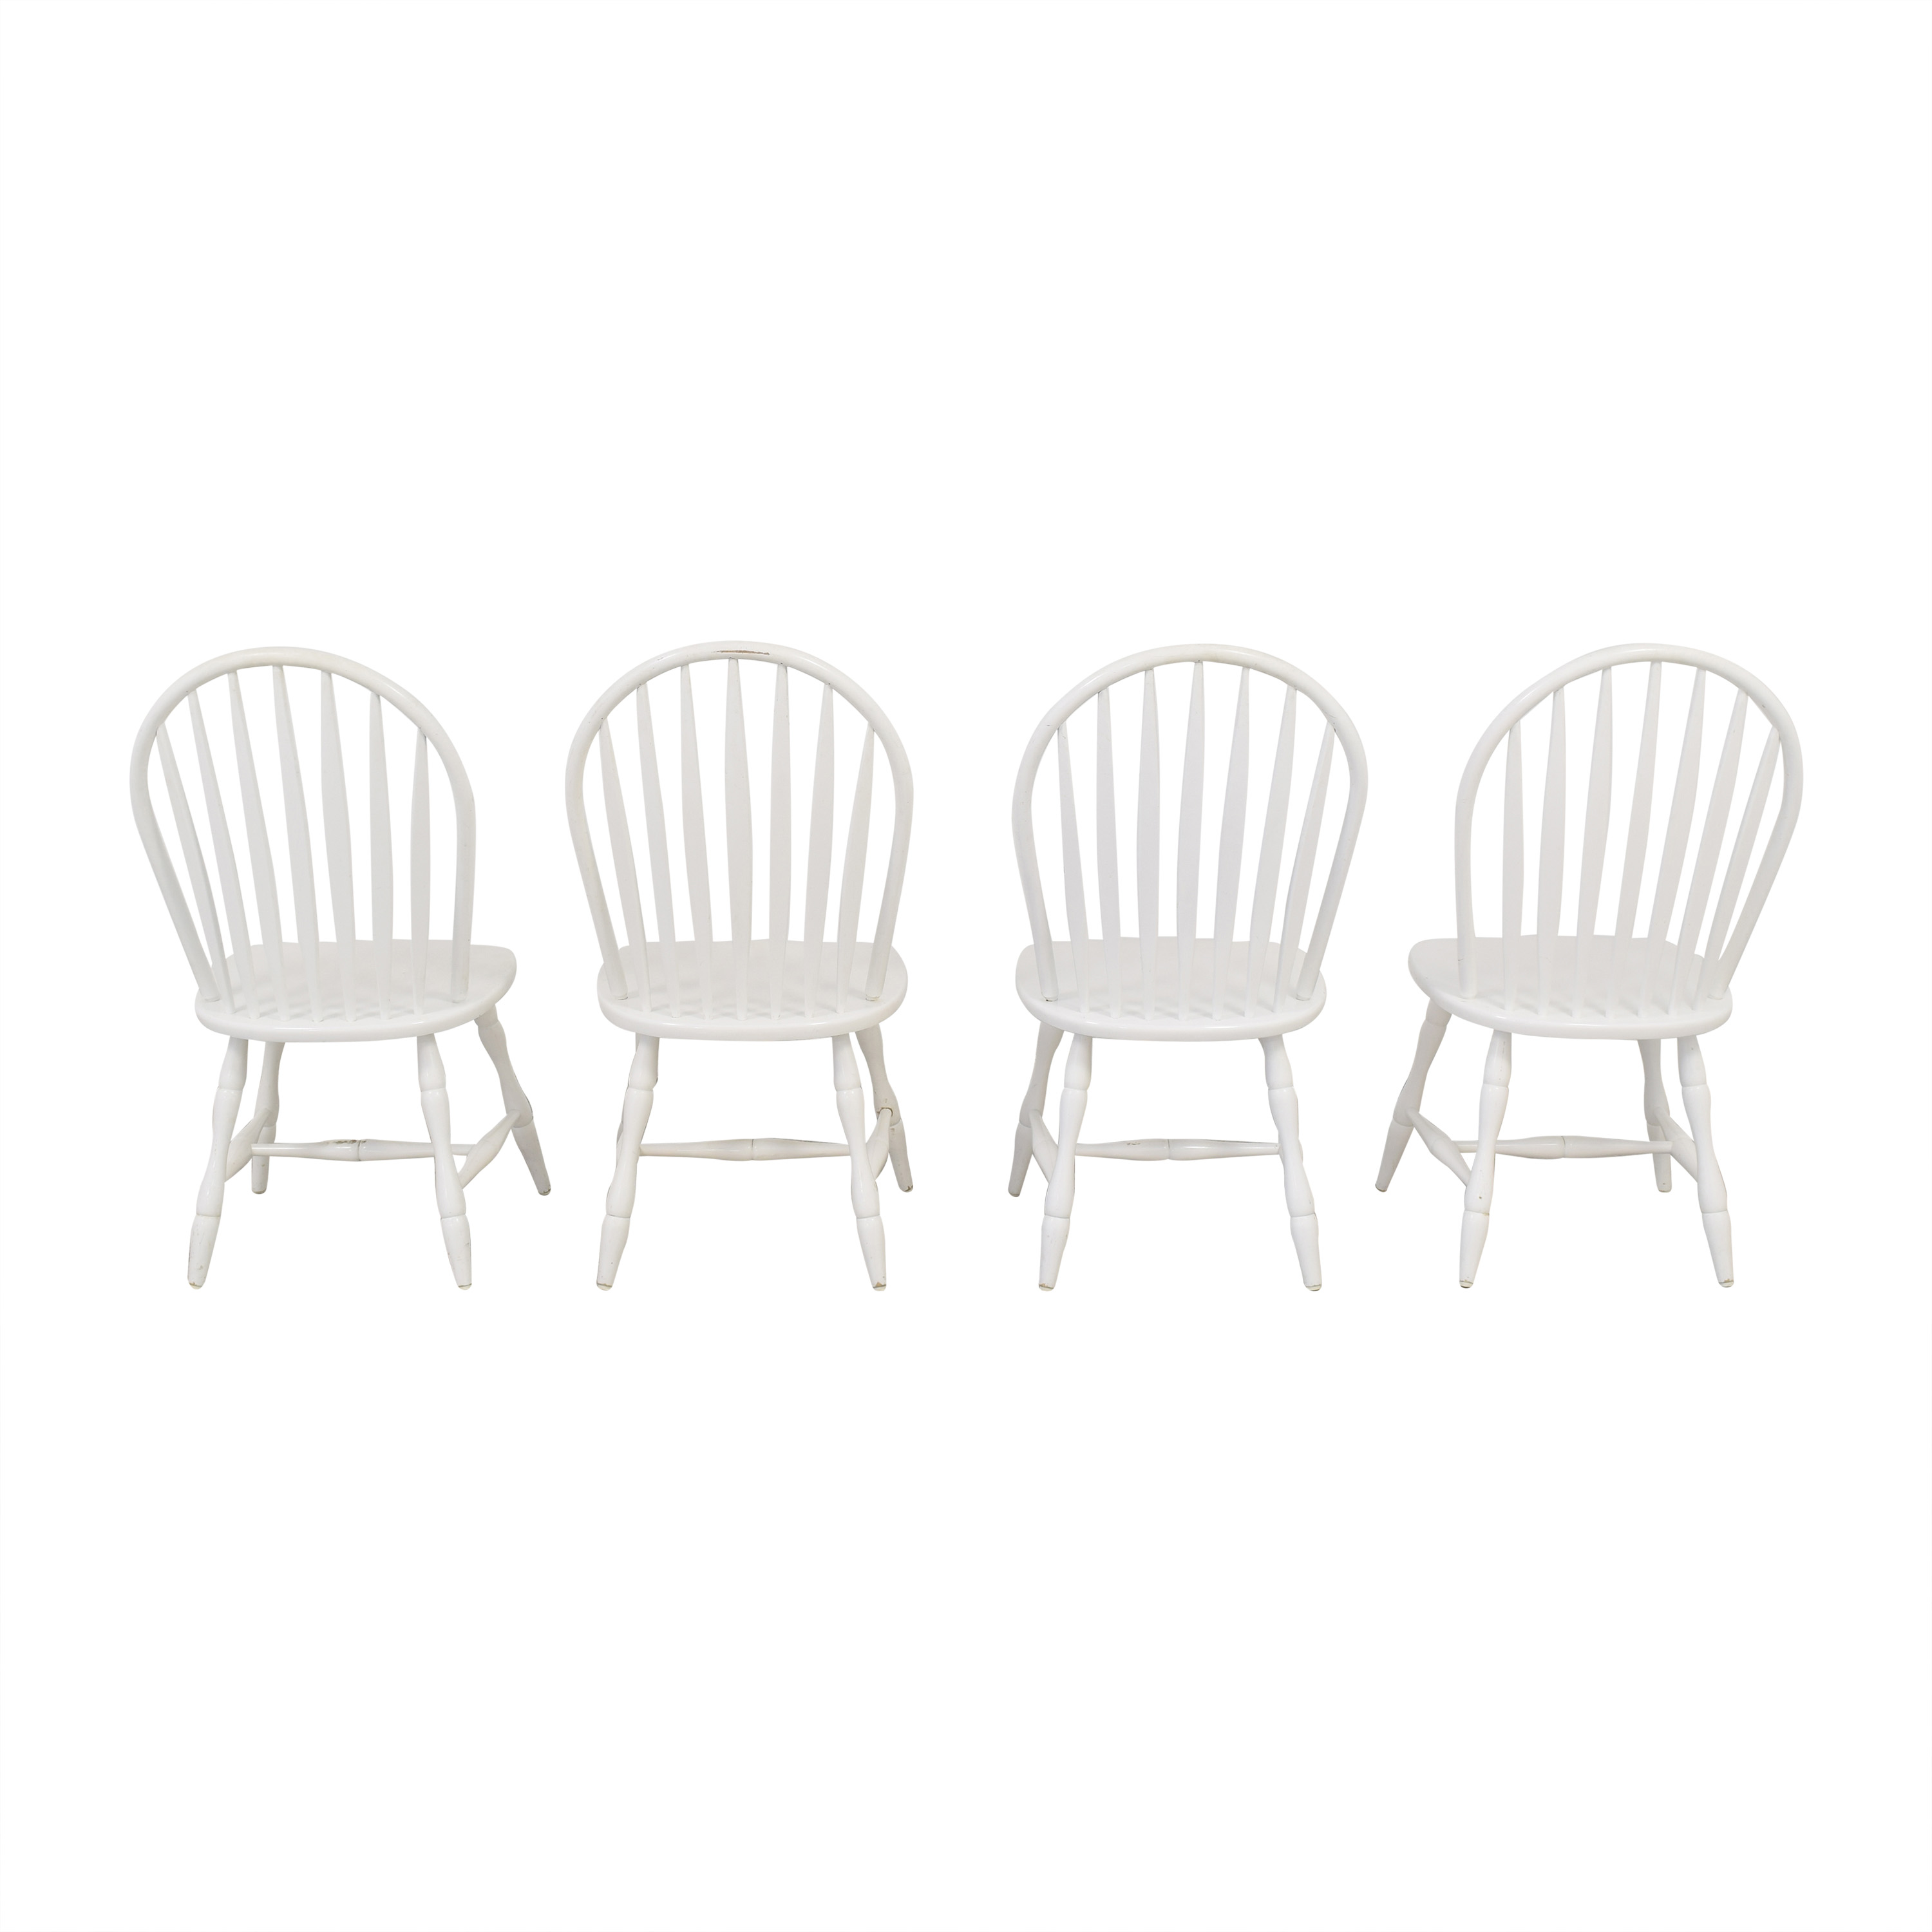 Canadel Windsor Dining Chairs / Dining Chairs